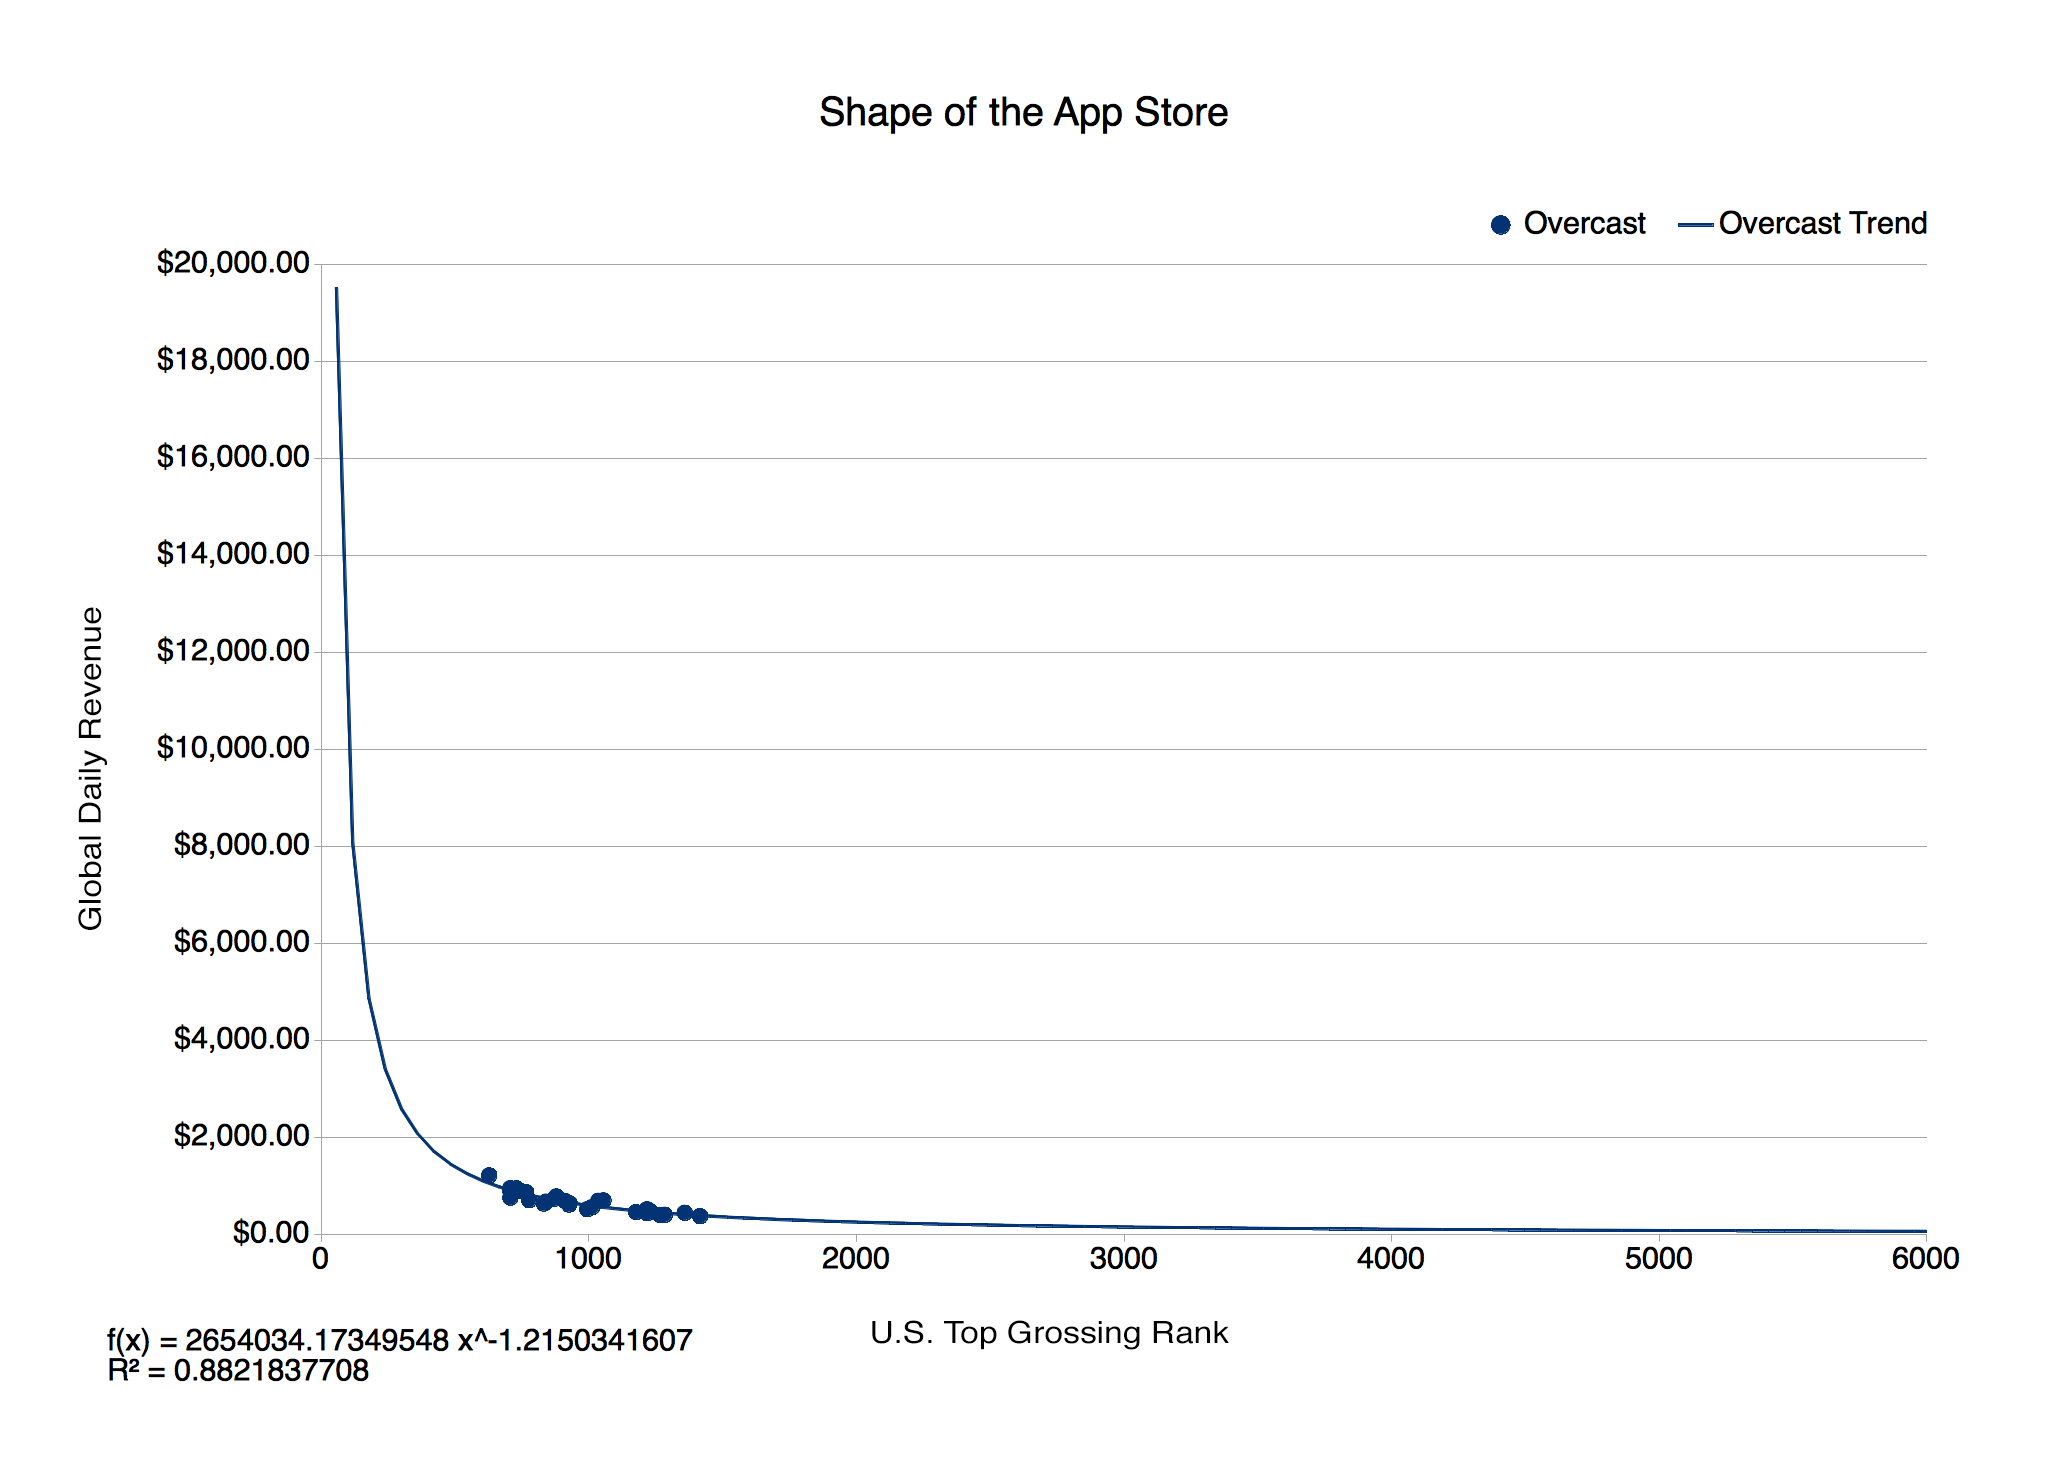 The Shape of the App Store